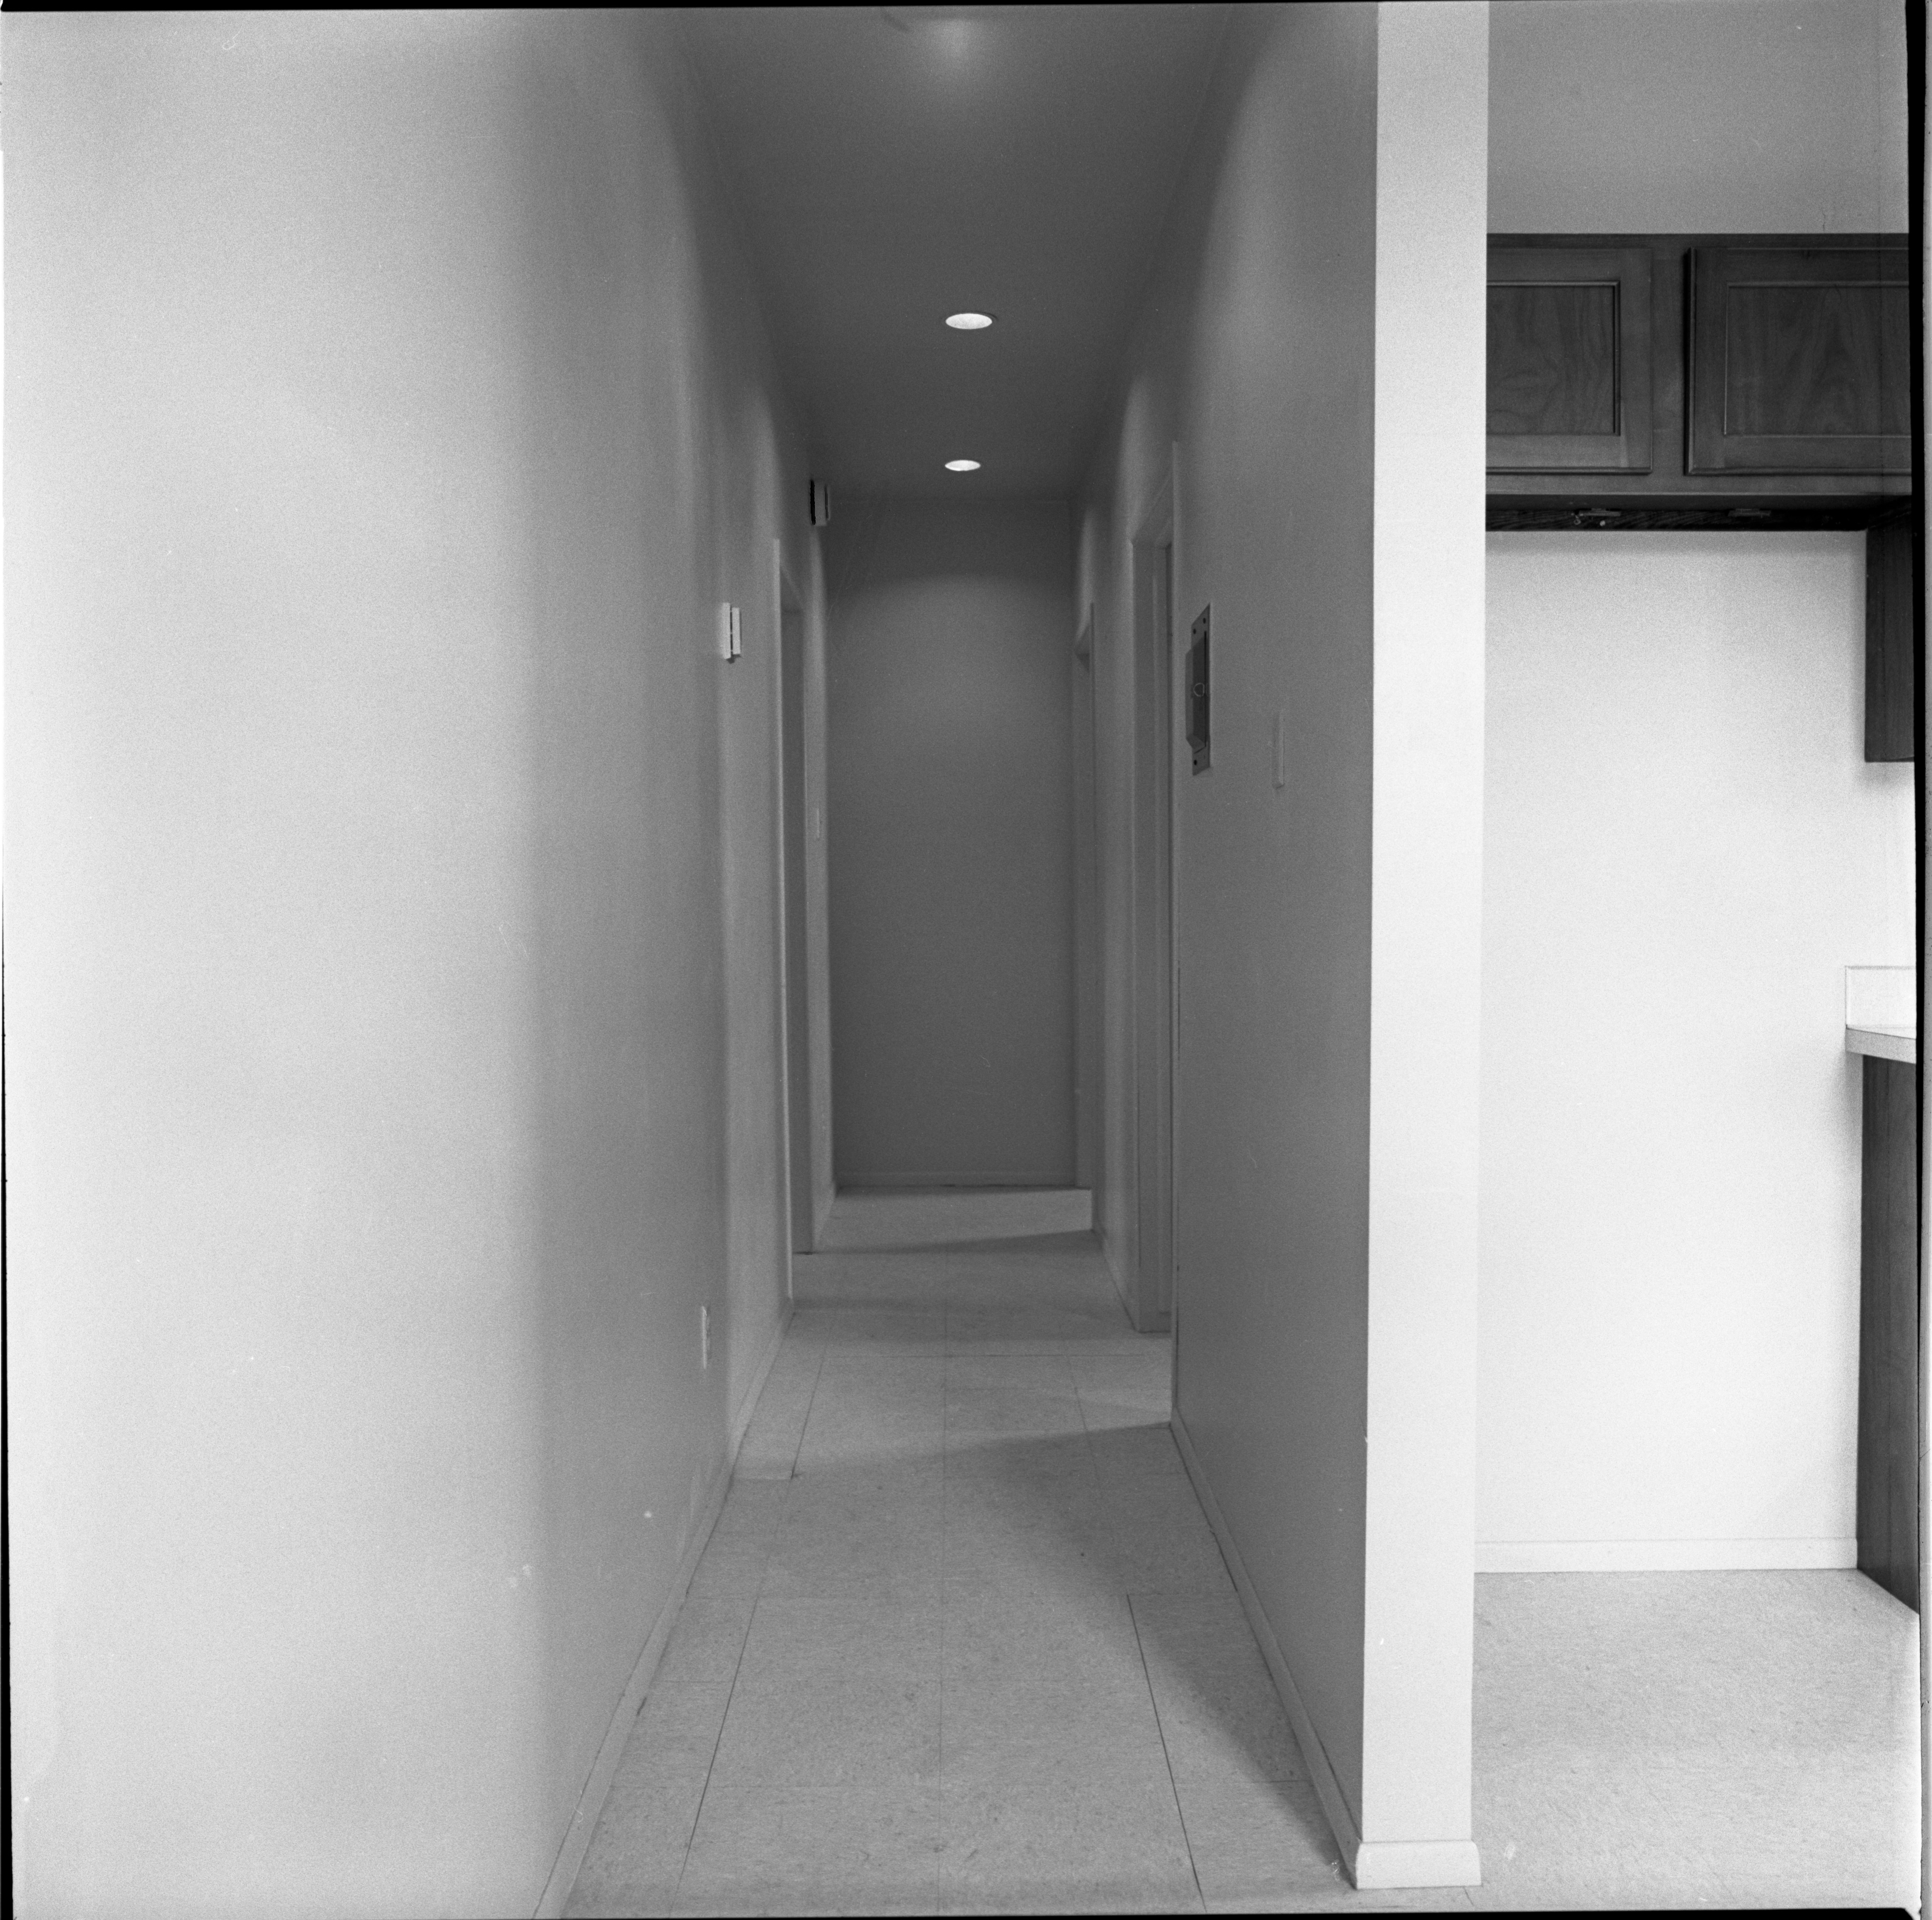 Hallway In New Apartments At 724 N Fifth Ave, March 21, 1975 image